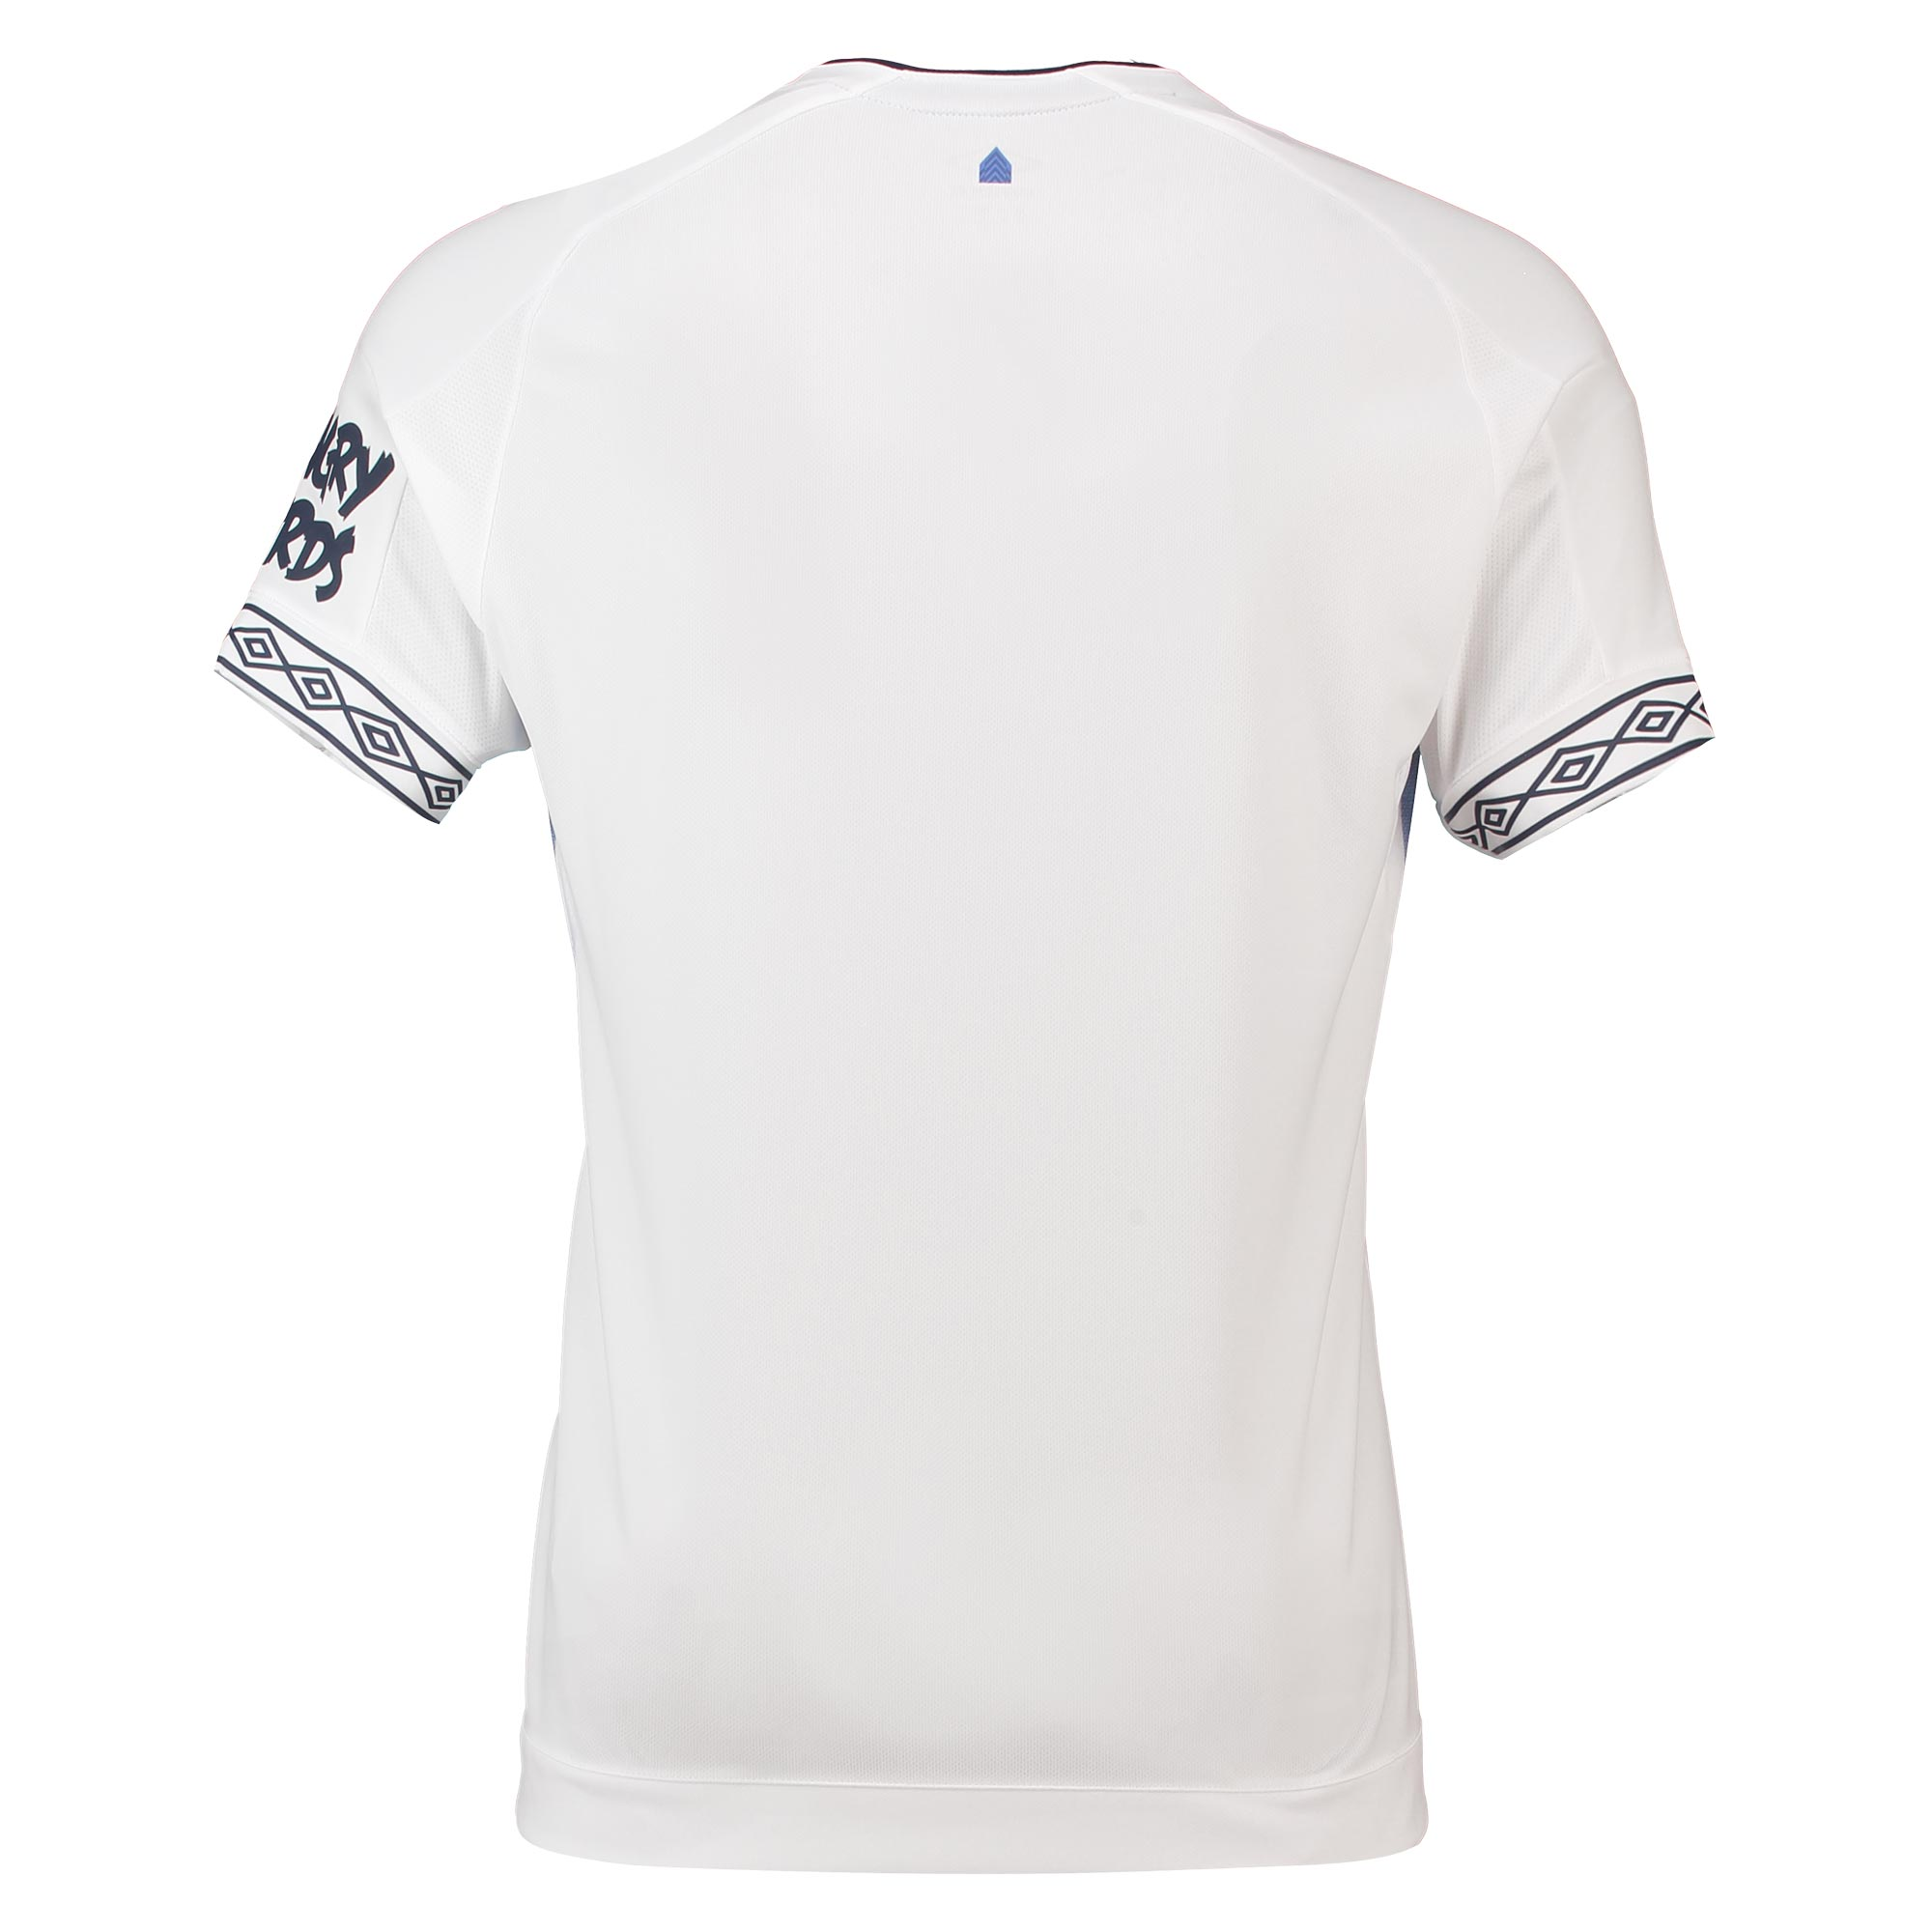 de6d026d642 The front of the aforementioned white kit top has a blue pattern. The  pattern contains different shades of the colouring and creates an  effective, ...